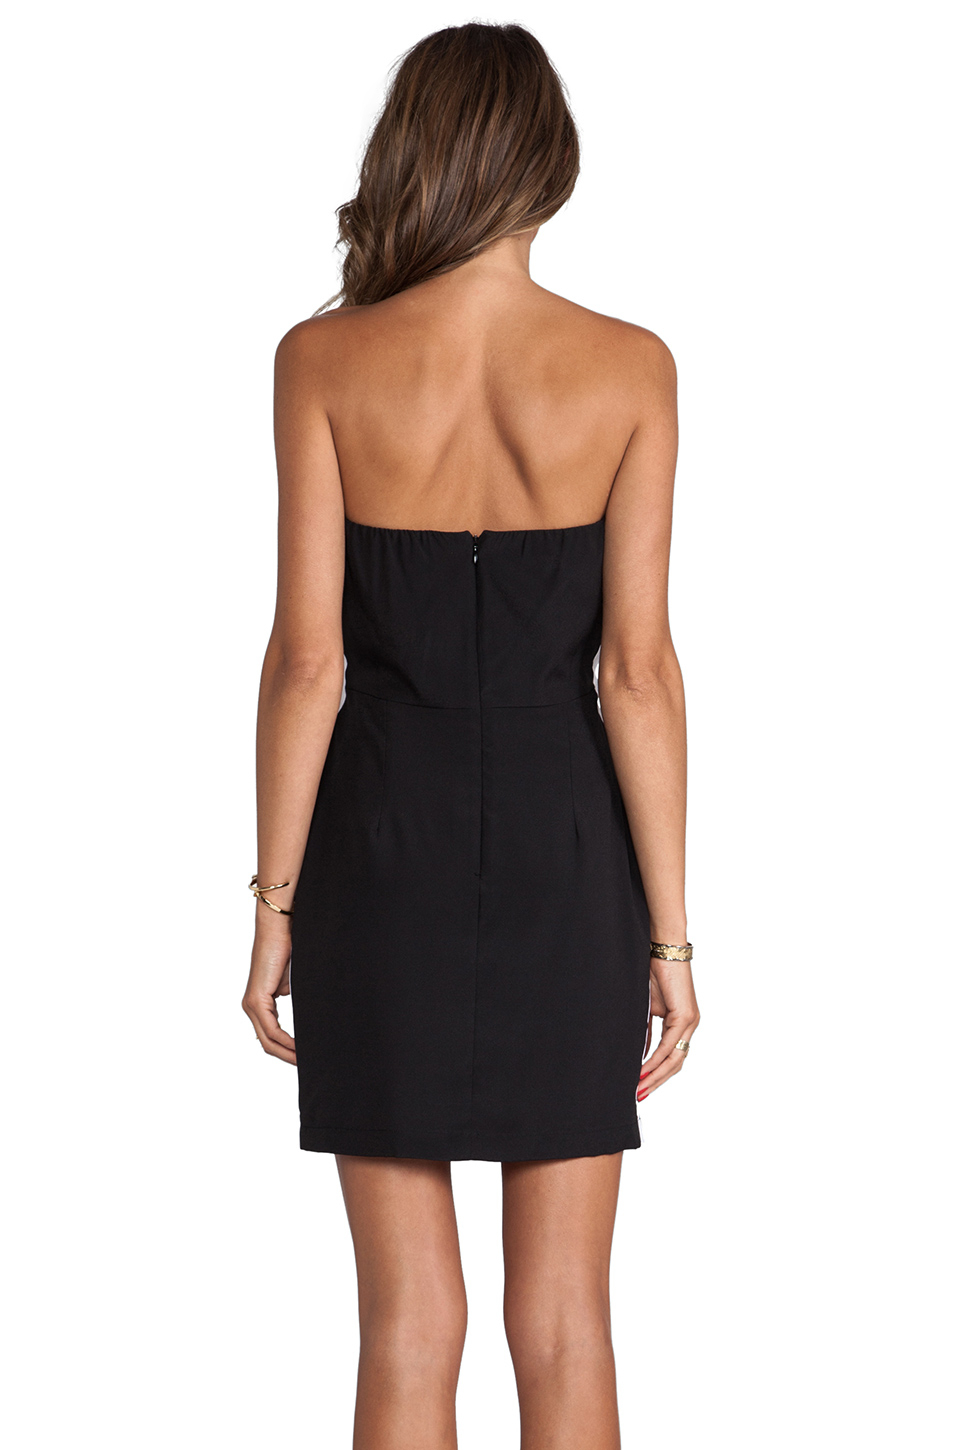 4809fe8978 Lyst - Naven Neon Collection Sporty Tube Cutout Dress in Black in Black